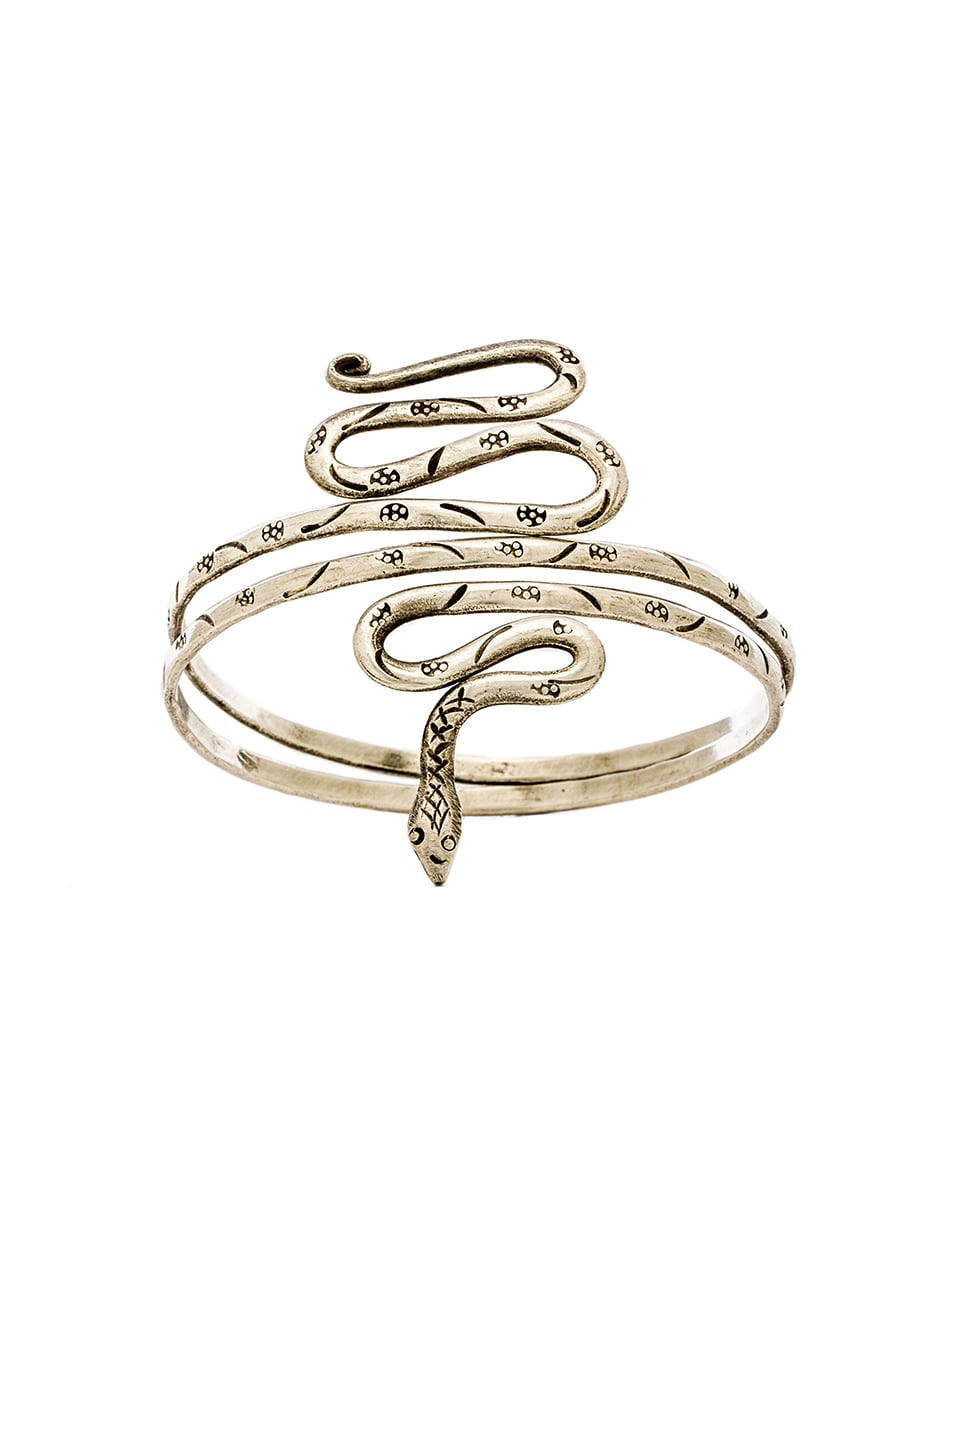 Natalie B Jewelry Python's Grip Armband in Silver